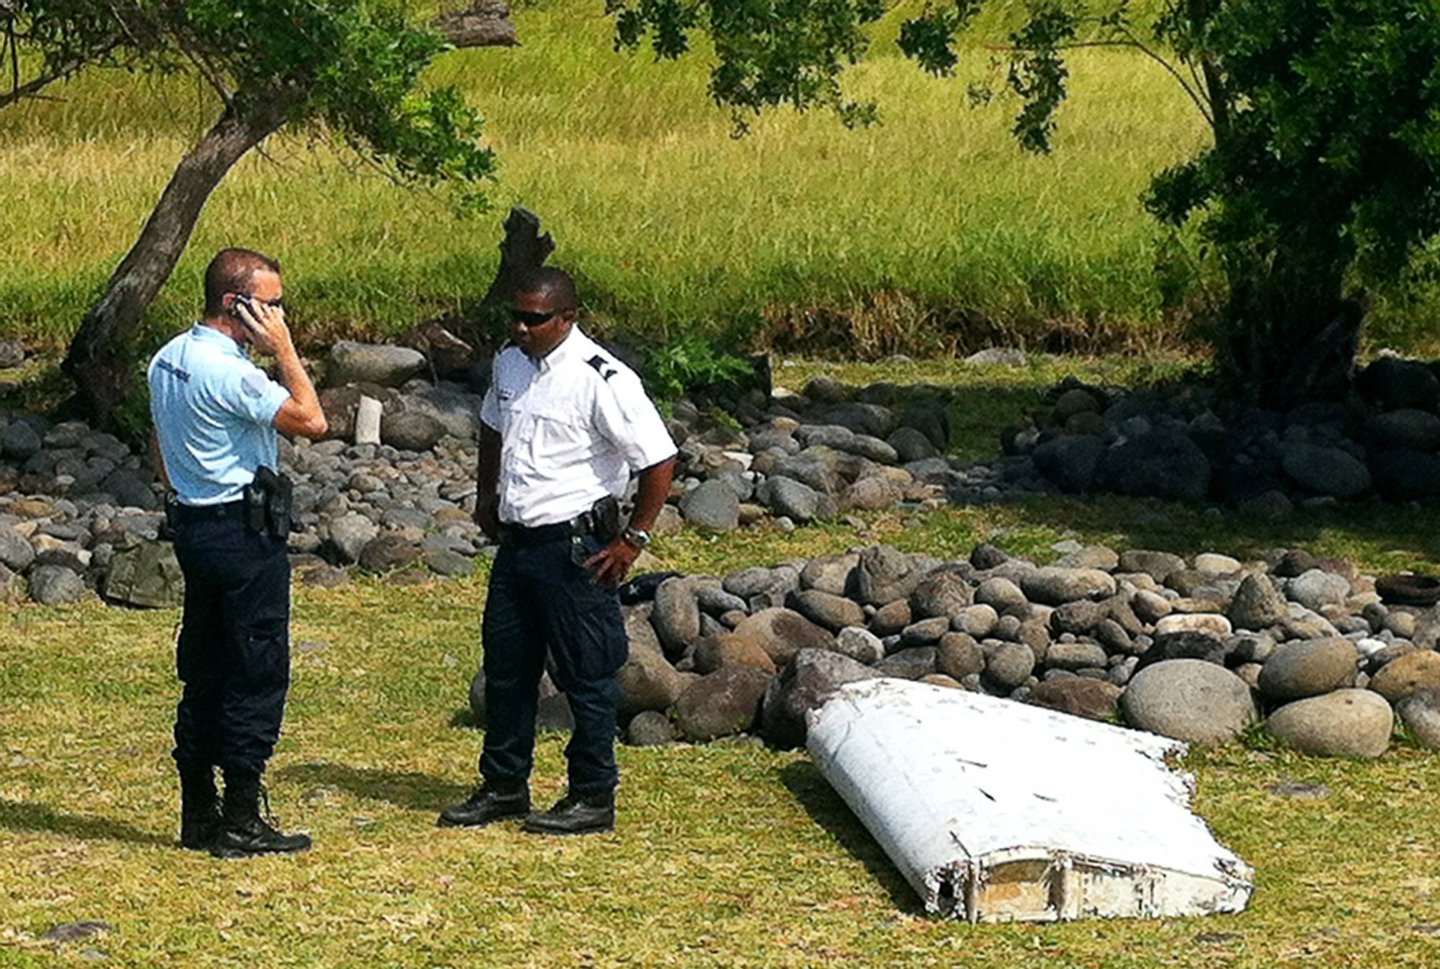 A policeman and a gendarme stand next to a piece of debris from an unidentified aircraft found in the coastal area of Saint-Andre de la Reunion, in the east of the French Indian Ocean island of La Reunion, on July 29, 2015. The two-metre-long debris, which appears to be a piece of a wing, was found by employees of an association cleaning the area and handed over to the air transport brigade of the French gendarmerie (BGTA), who have opened an investigation. An air safety expert did not exclude it could be a part of the Malaysia Airlines flight MH370, which went missing in the Indian Ocean on March 8, 2014. AFP PHOTO / YANNICK PITOU (Photo credit should read YANNICK PITOU/AFP/Getty Images)